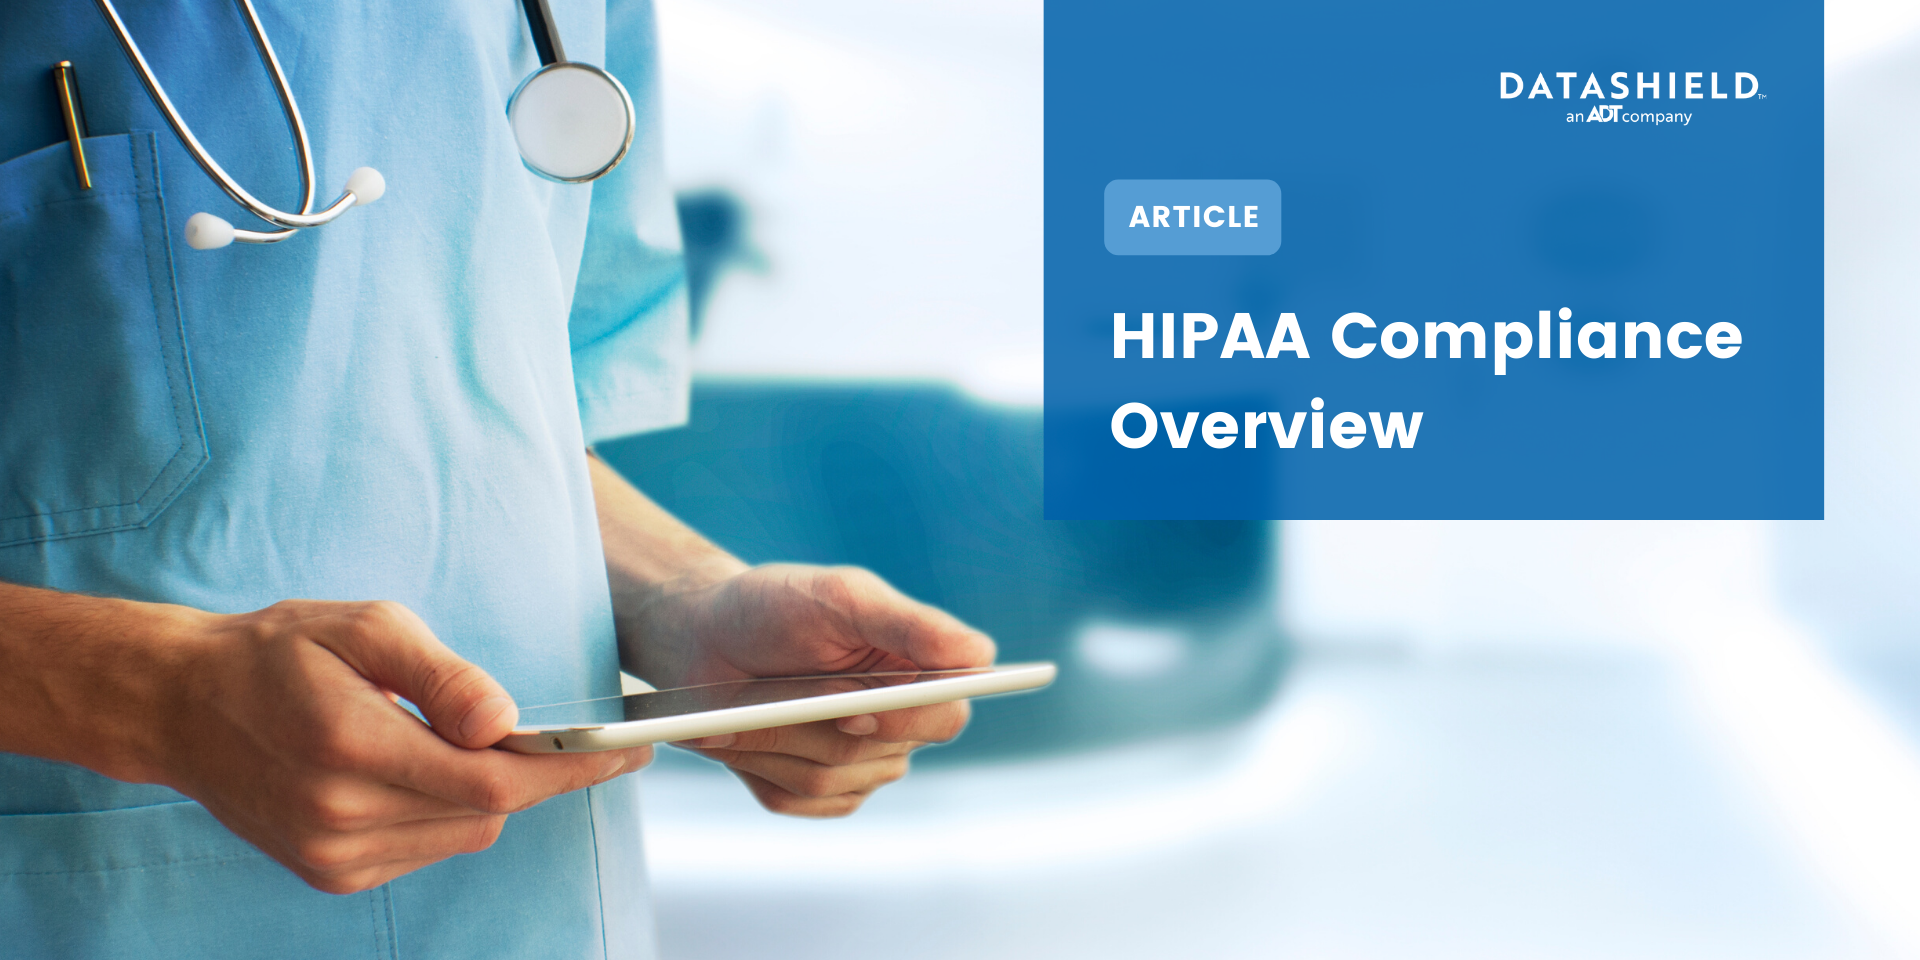 HIPAA Article